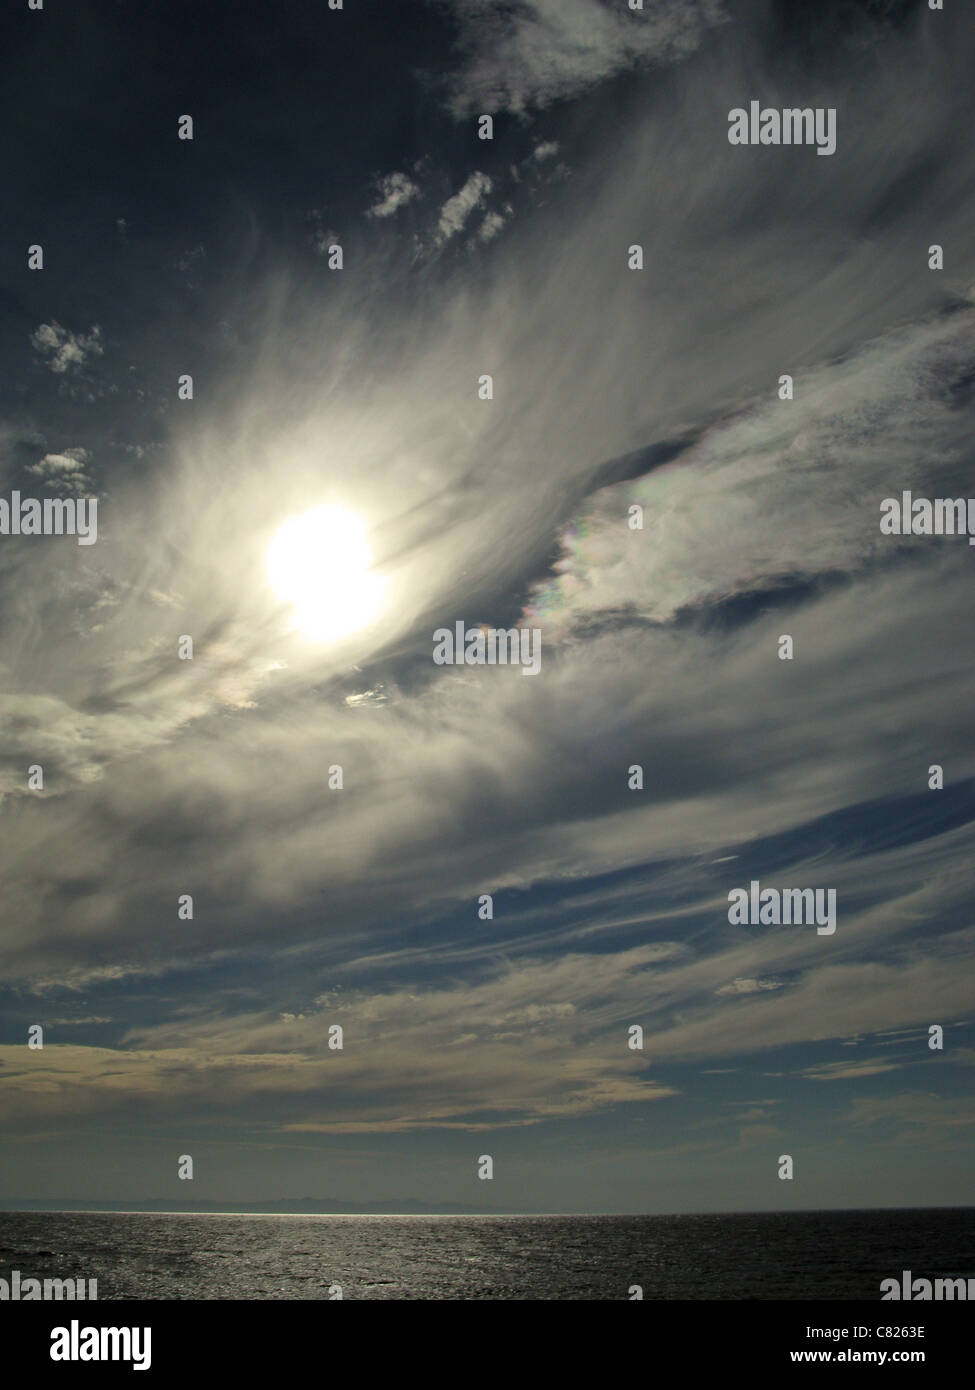 Skyscape with clouds and backlit - Stock Image